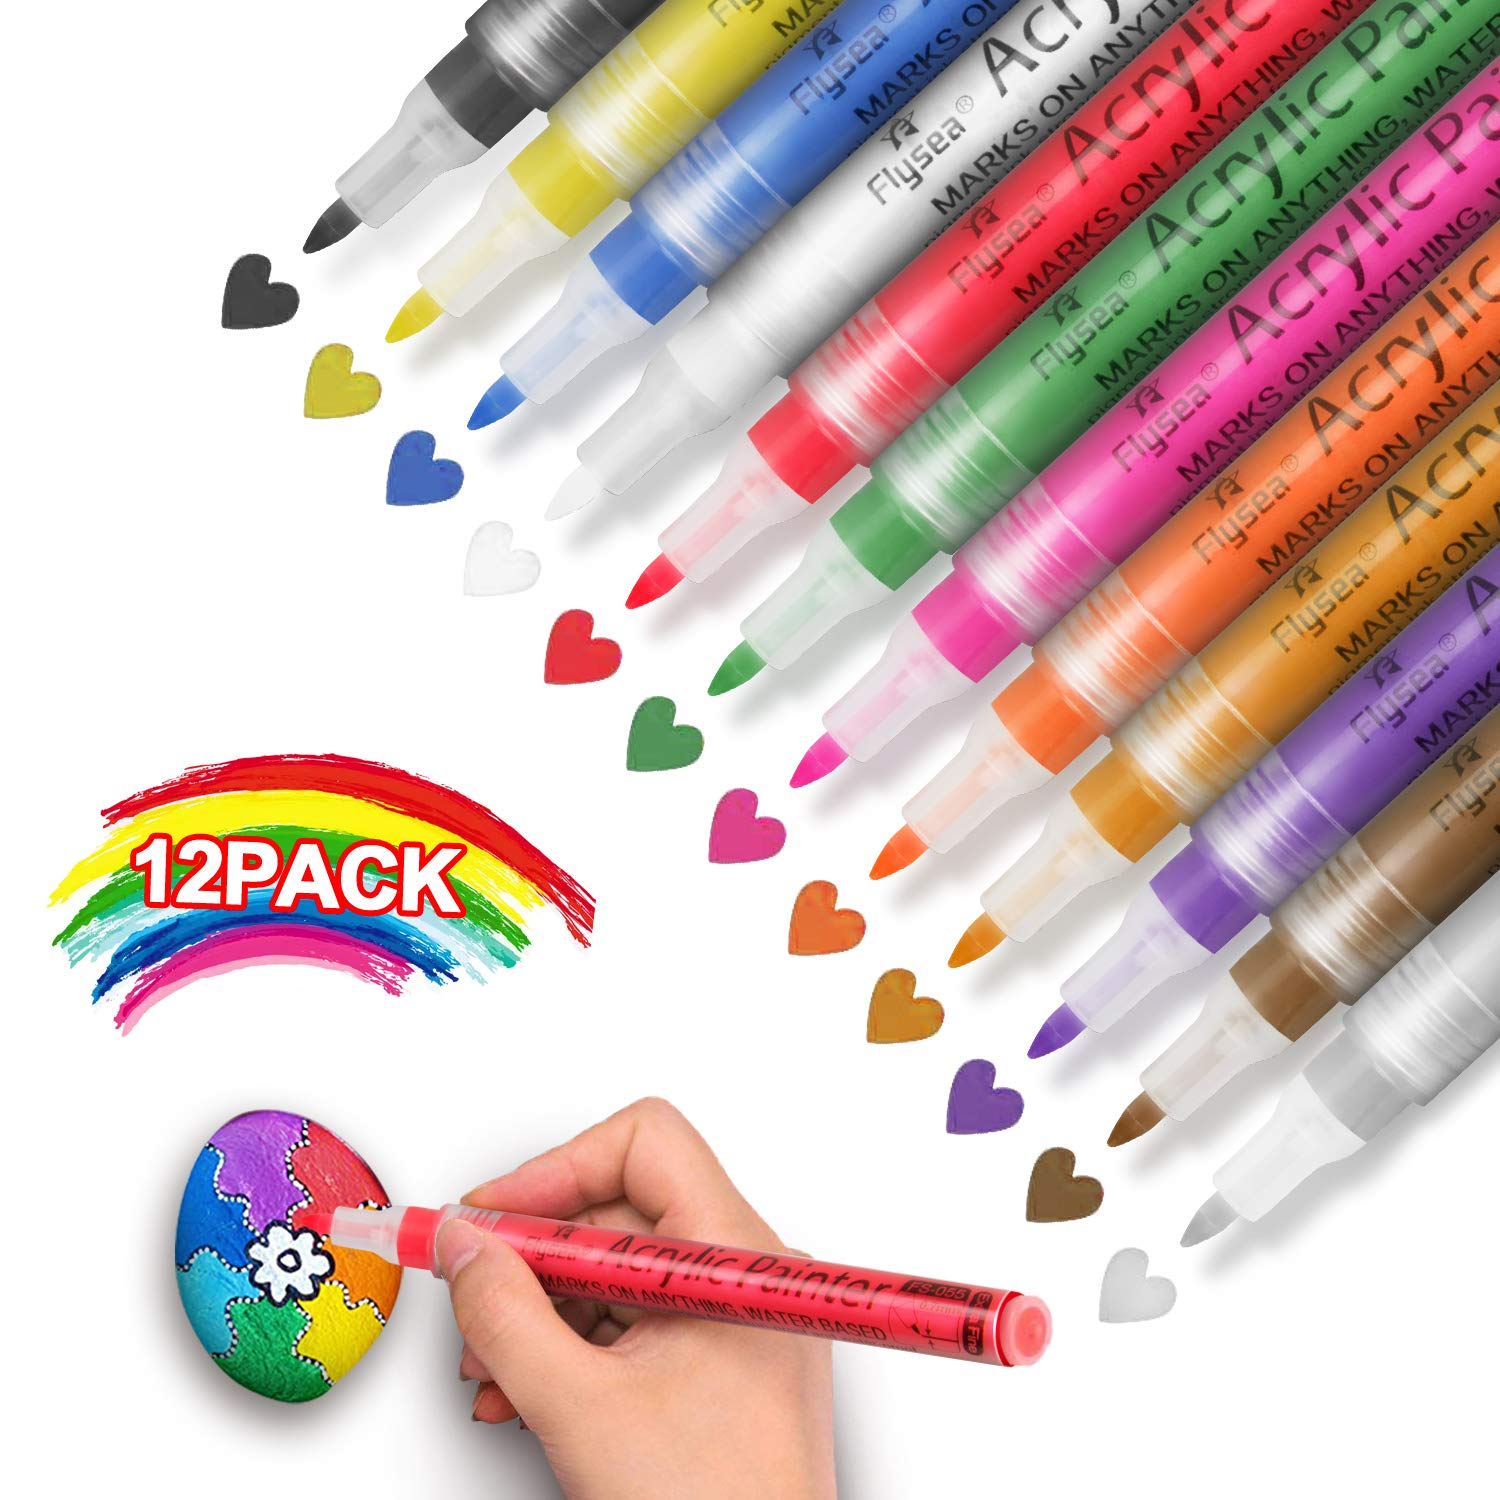 Acrylic Paint Marker Pens - Set of 12 Colors Water Based for Rock Painting, Stone, Glass, Wood, Paper Decoration,Custom Mug Design,DIY Project, Gifts for Kids (12 Colors)